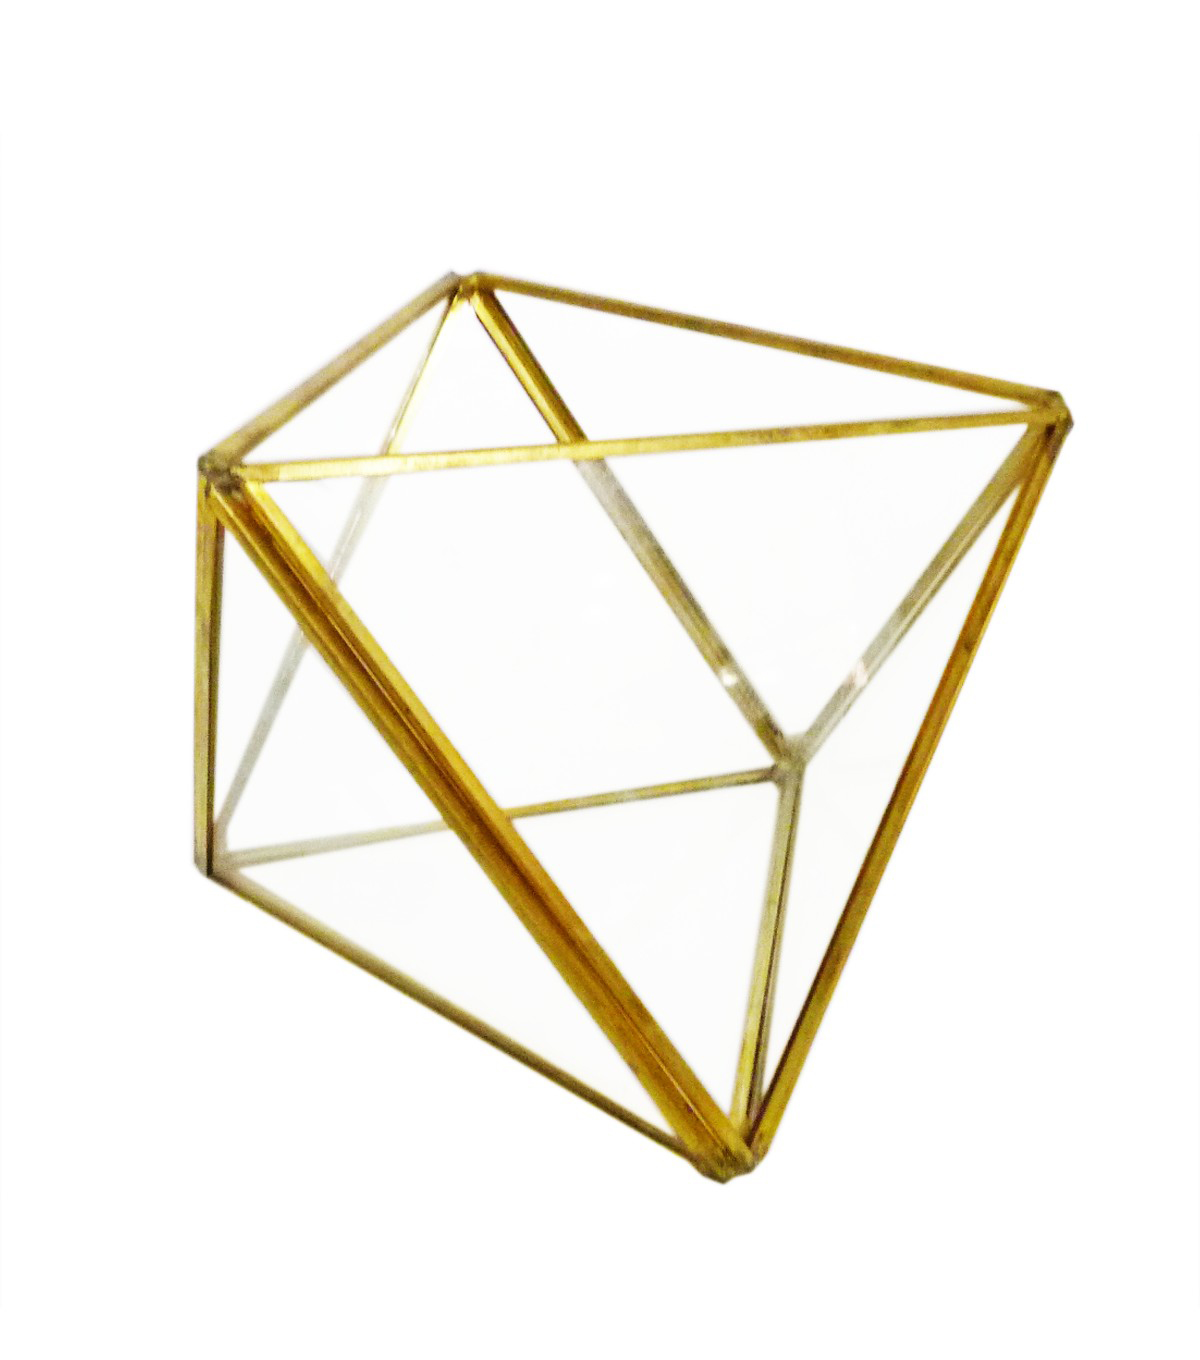 Bloom Room Glass & Metal Geometric Shape Terrarium-Gold Finish